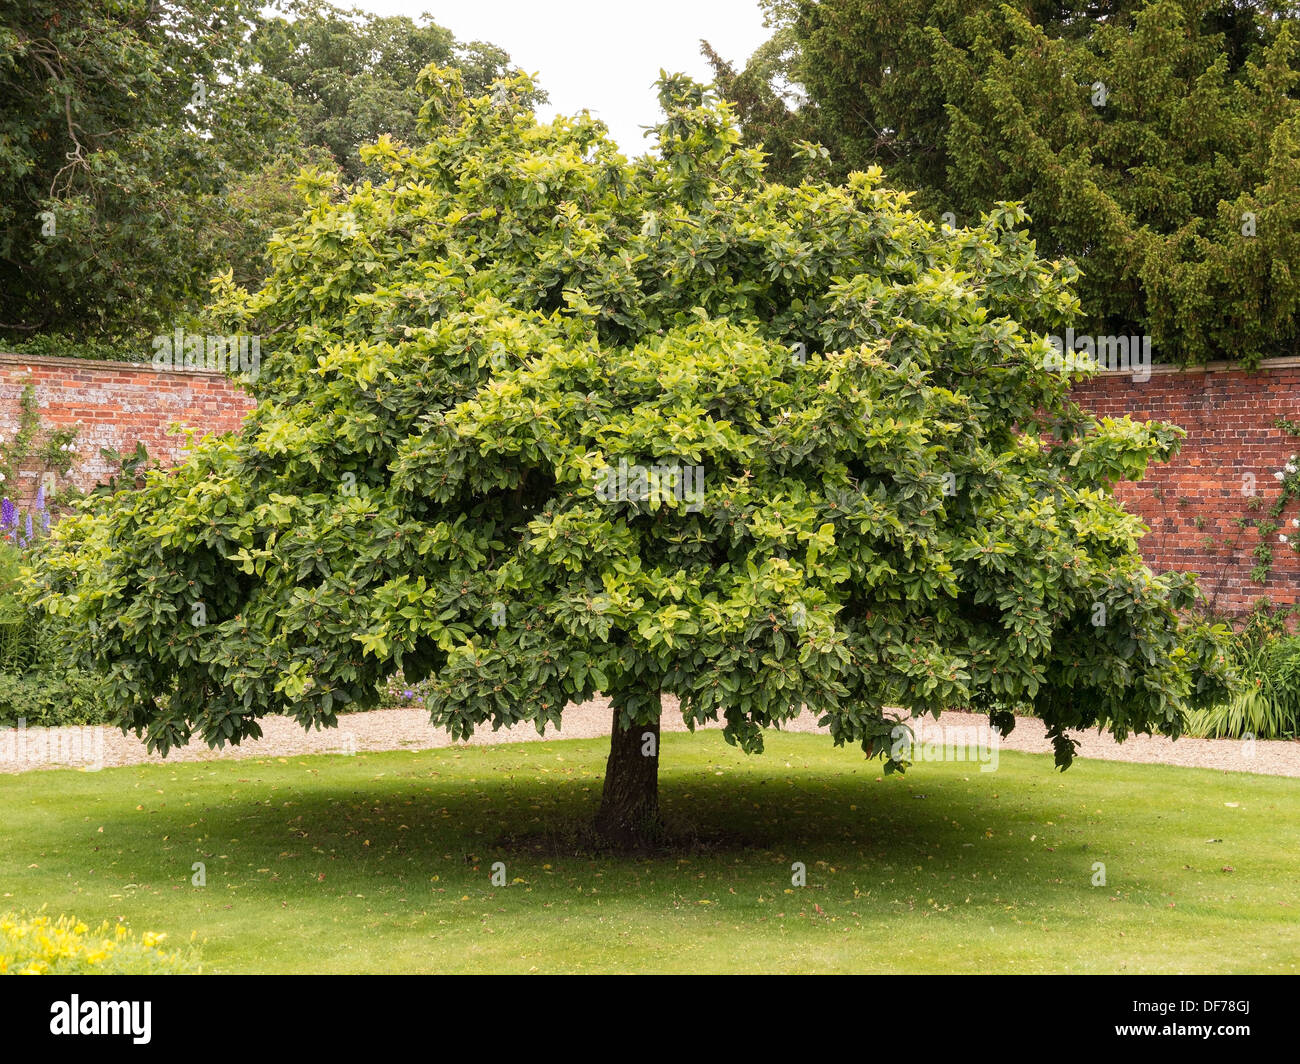 mespilus germanica medlar tree growing in grass lawn in. Black Bedroom Furniture Sets. Home Design Ideas